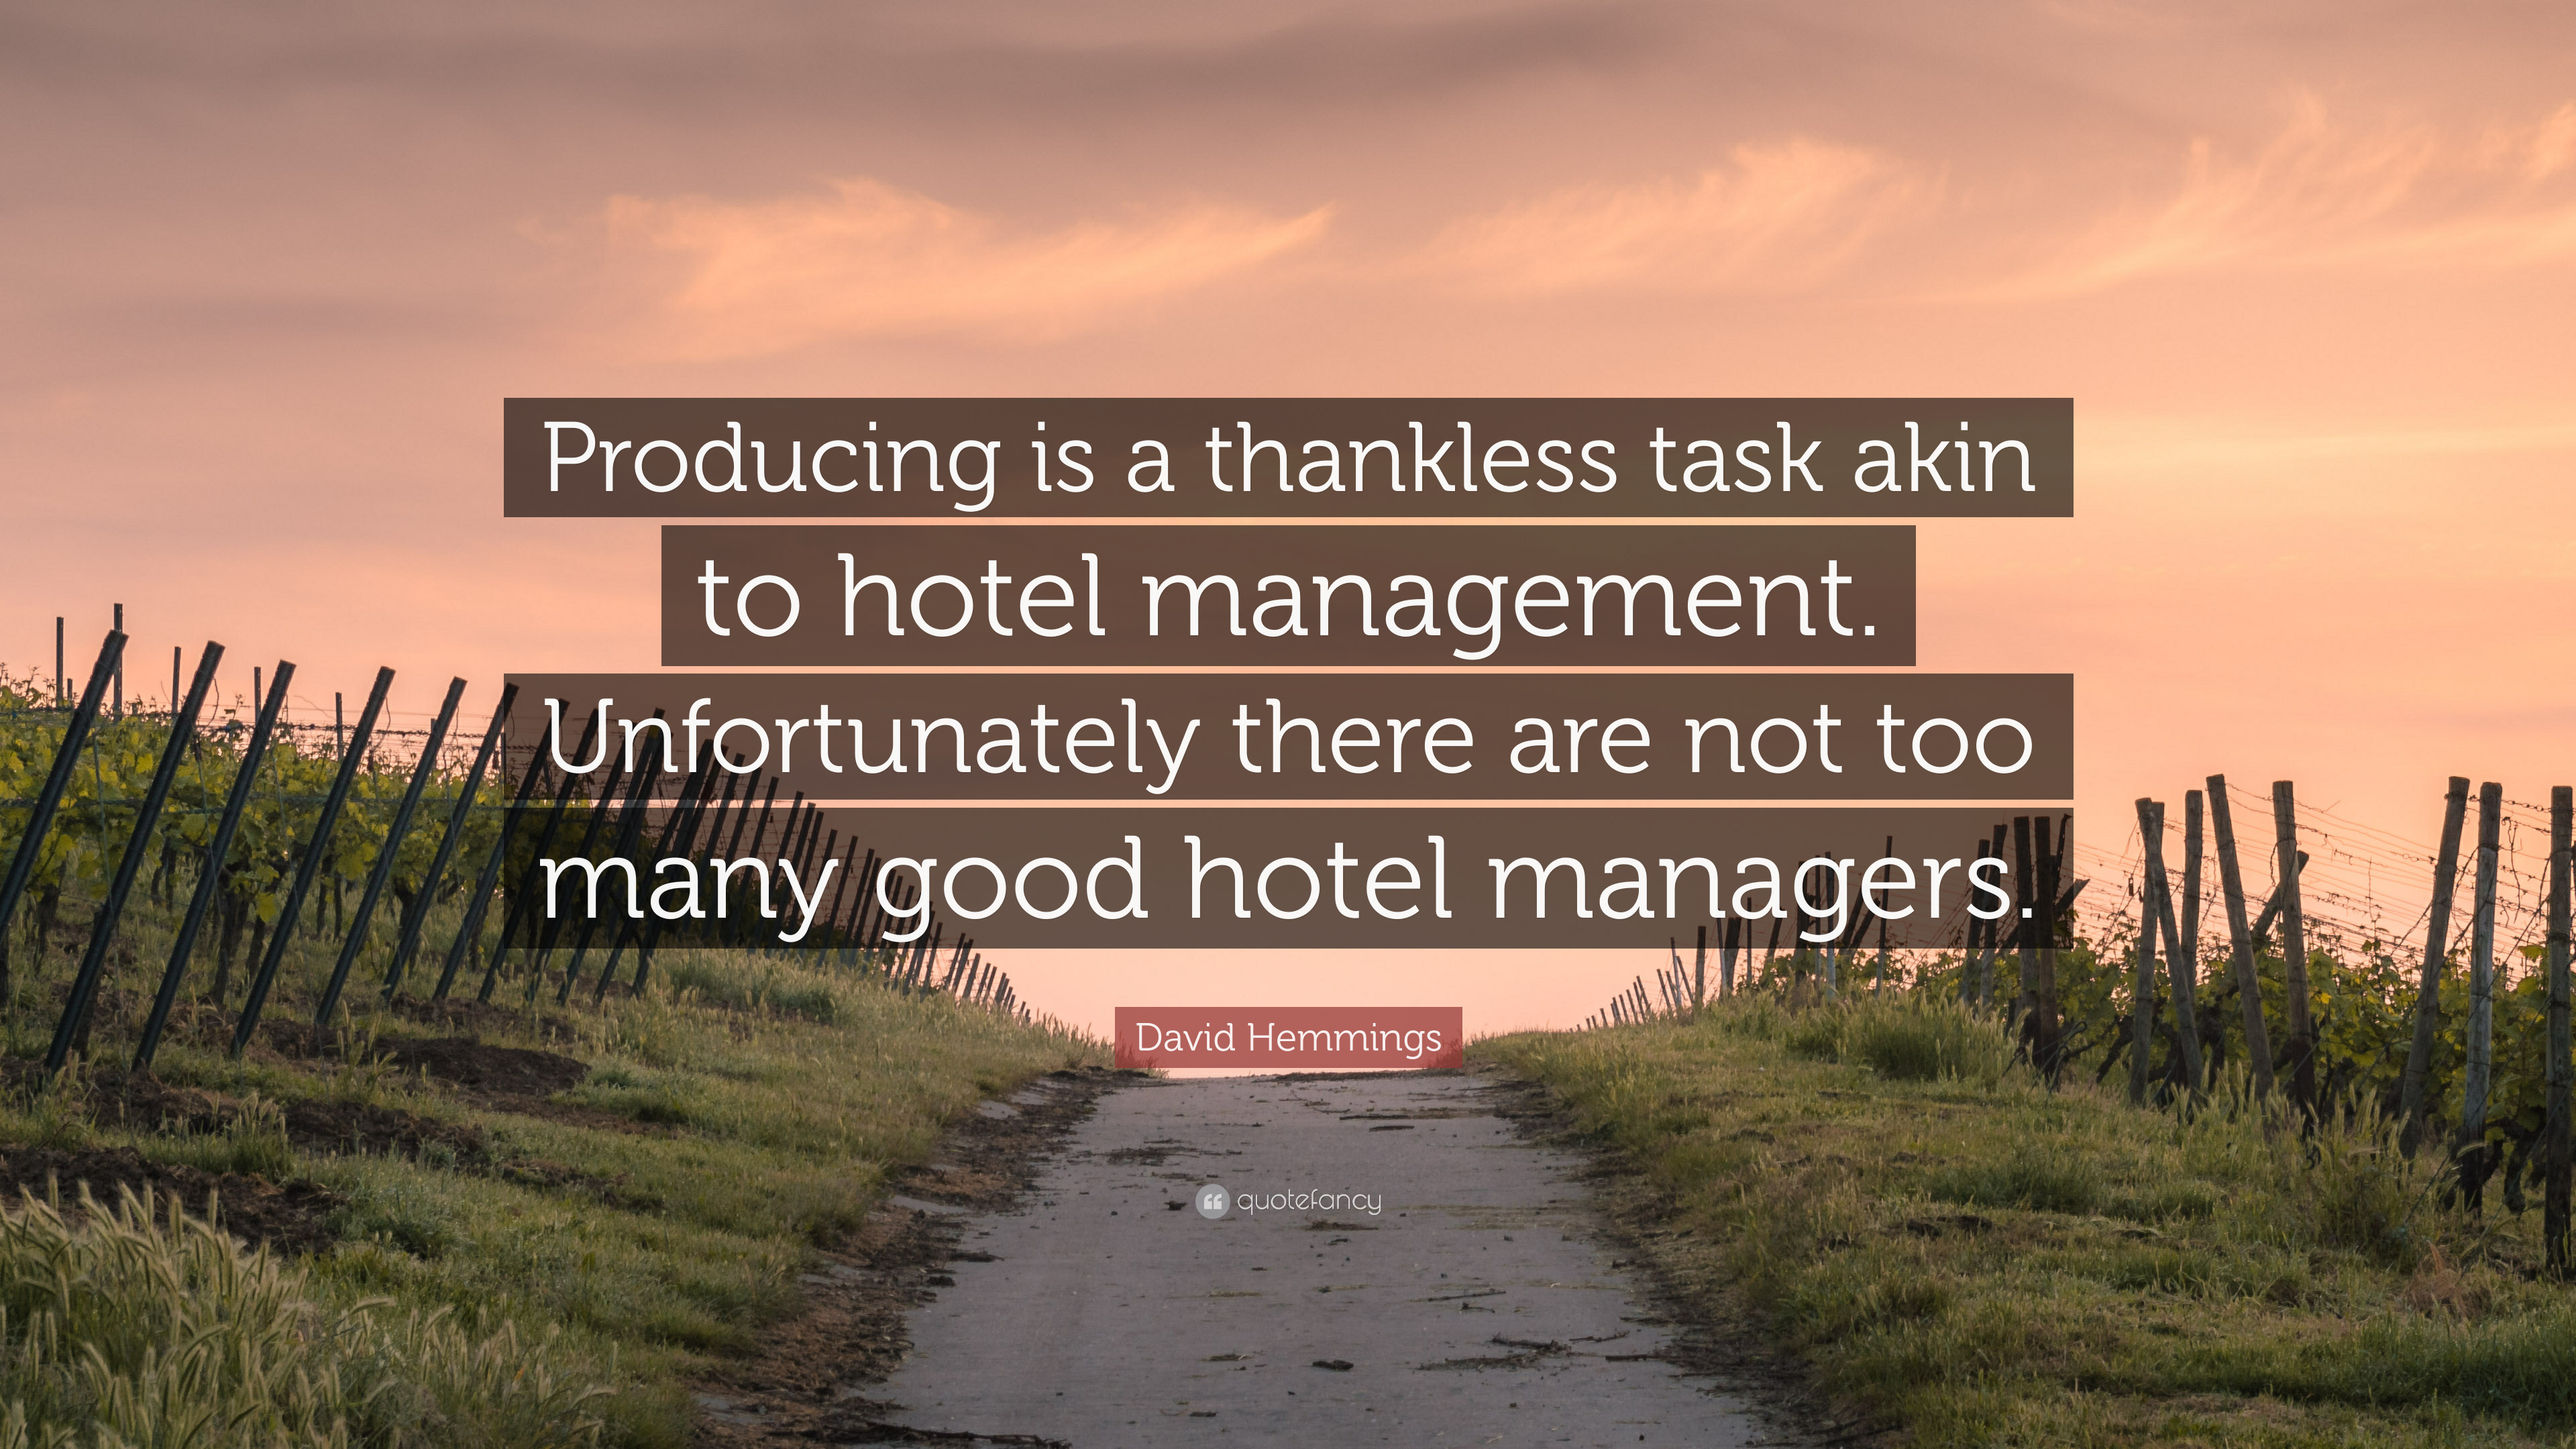 """David Hemmings Quote: """"Producing is a thankless task akin to hotel  management. Unfortunately there are not too many good hotel managers."""" (7  wallpapers) - Quotefancy"""